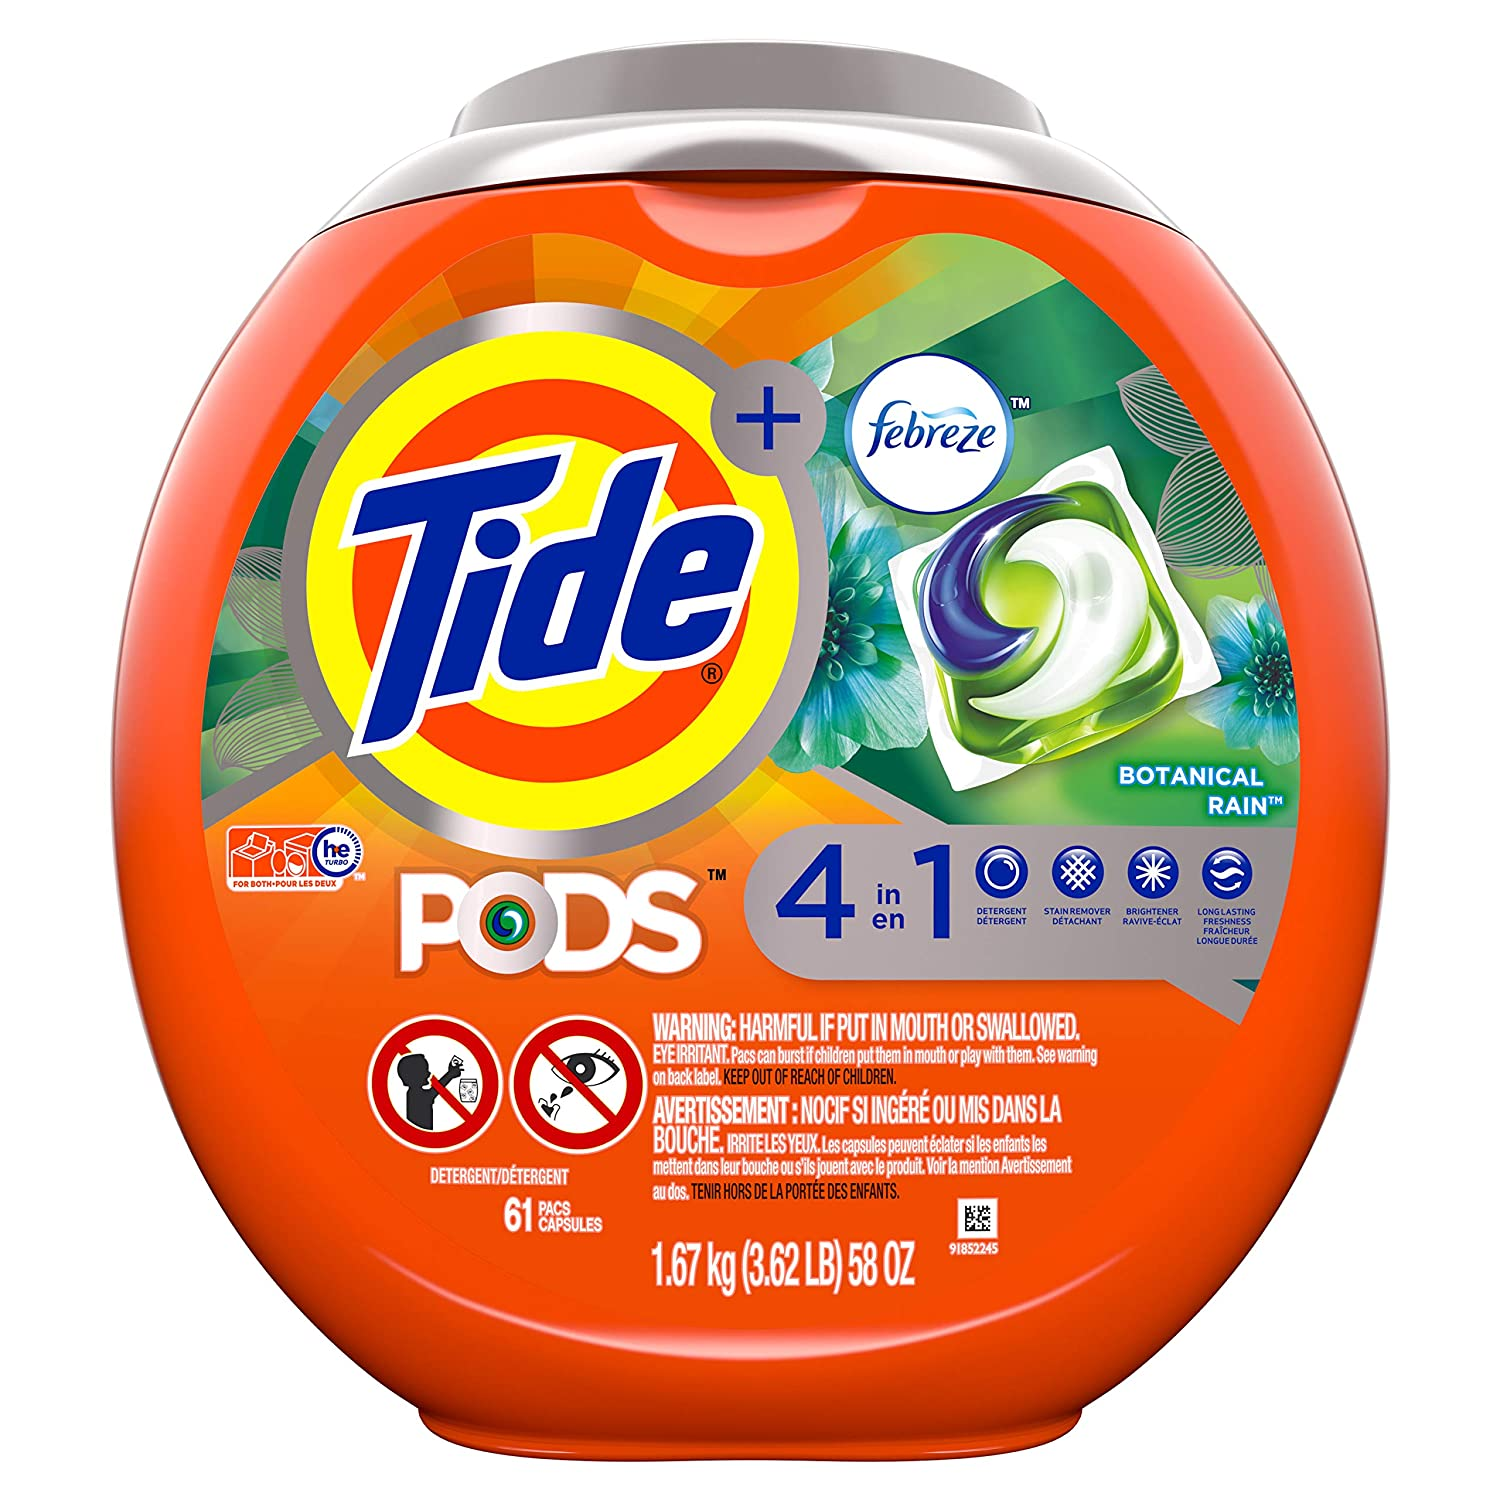 Amazon.com: Detergente de lavandería turbo tide, pods ...